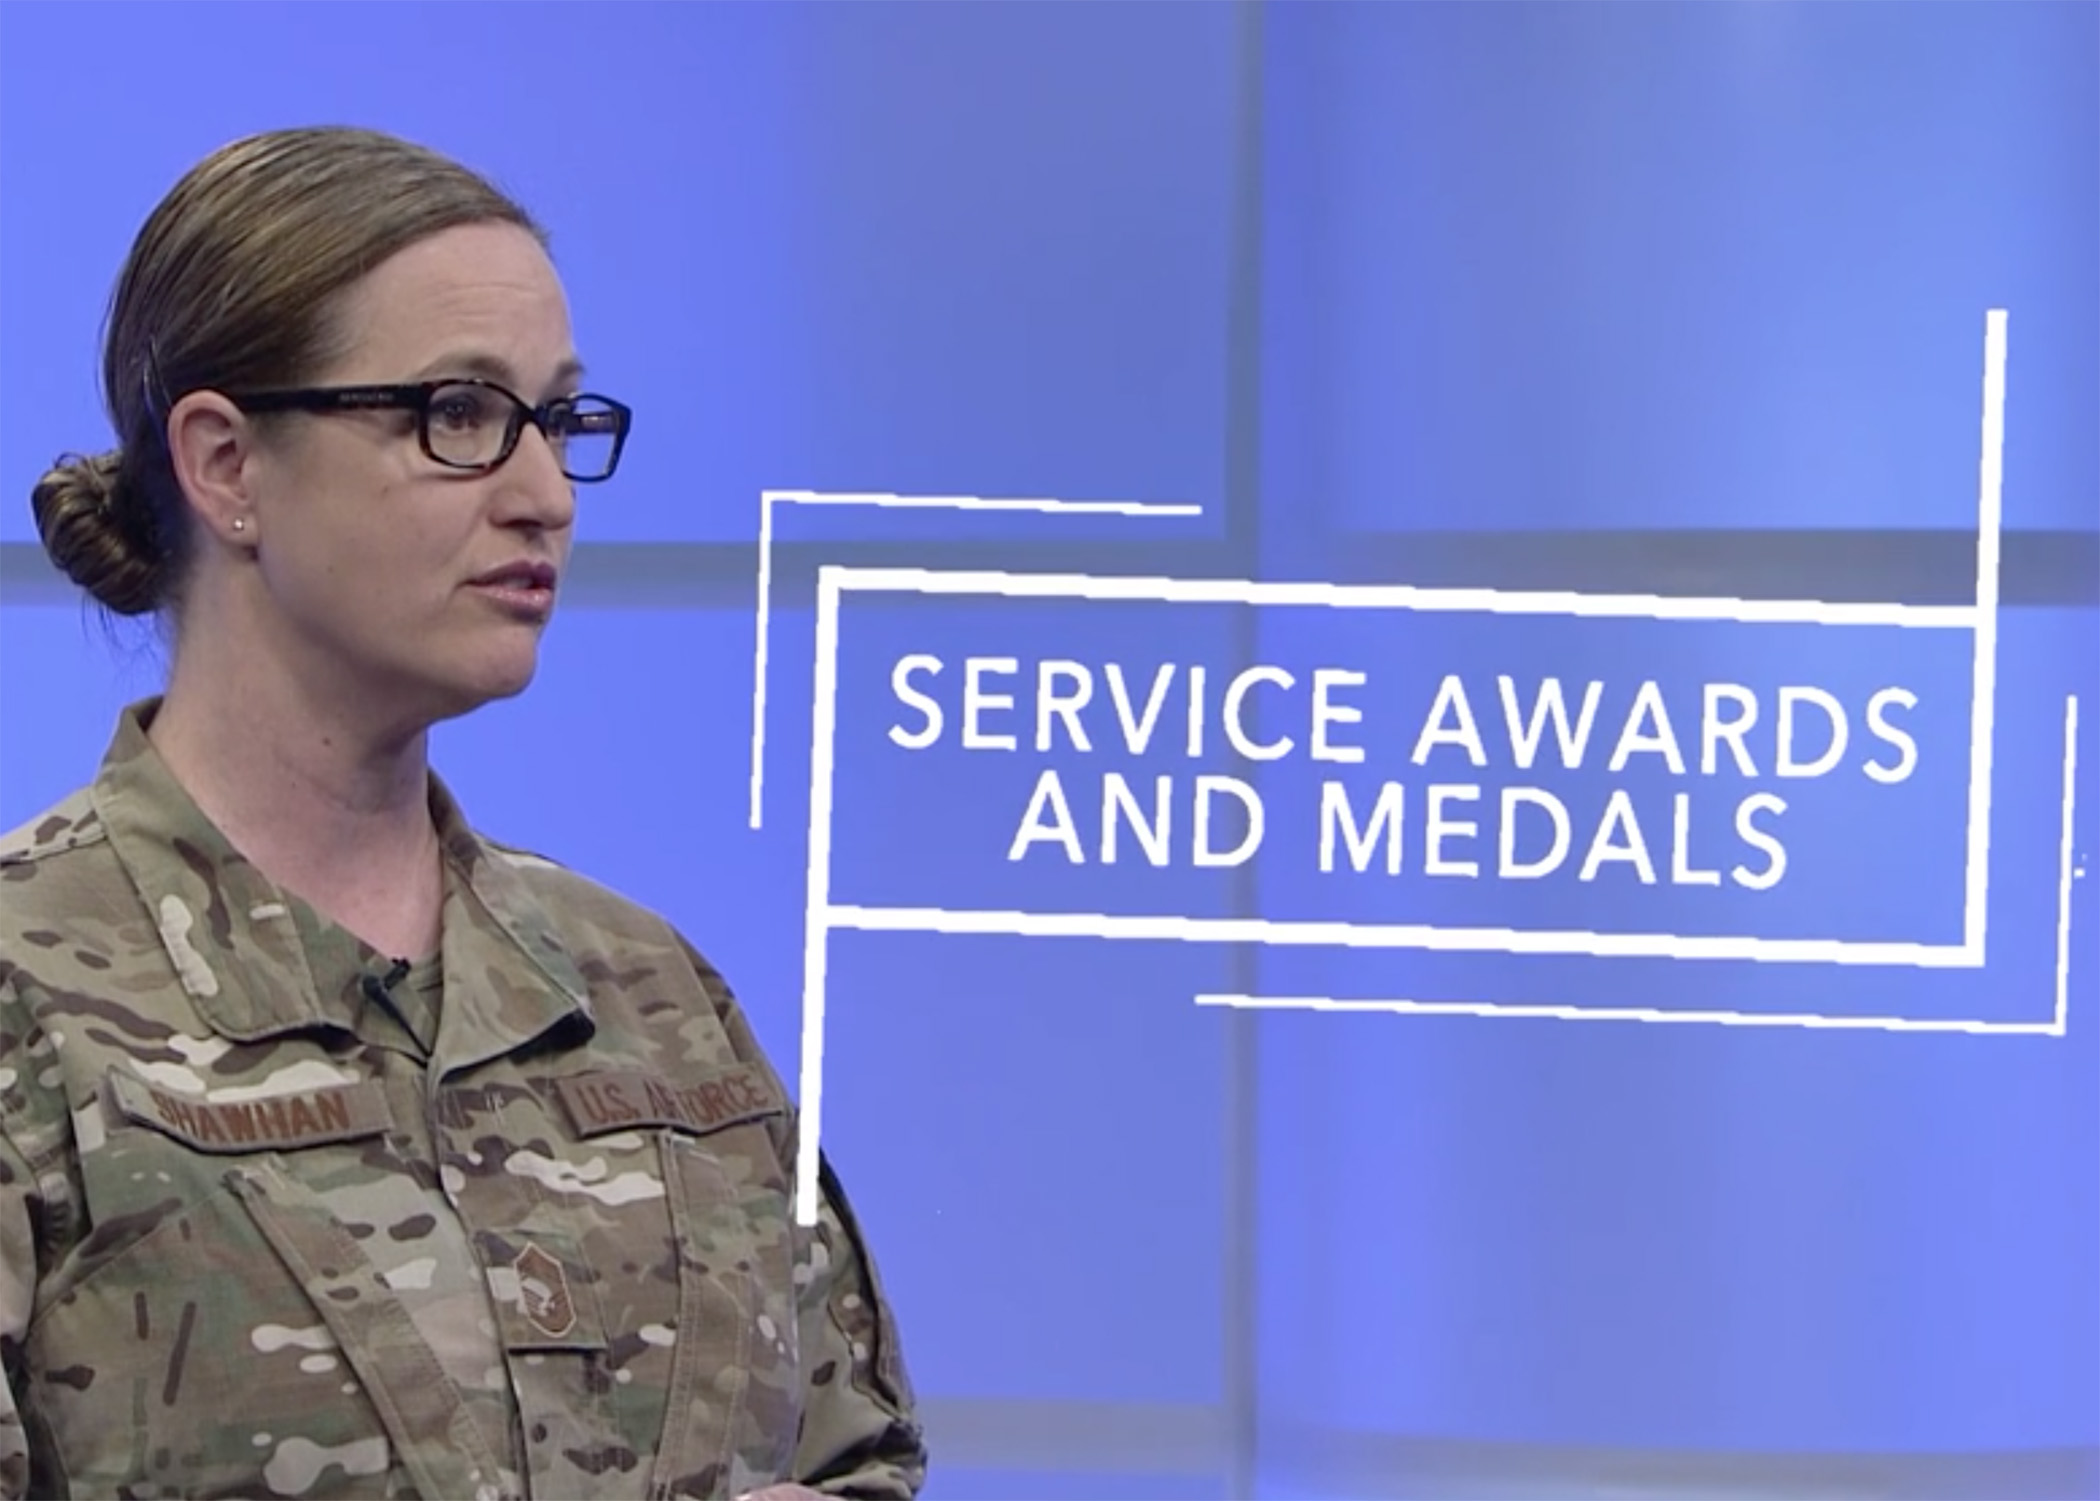 An on-demand learning video released by the Air National Guard's primary learning center educates Airmen on how to write and process awards and decorations. (U.S. Air National Guard file photo/screenshot)